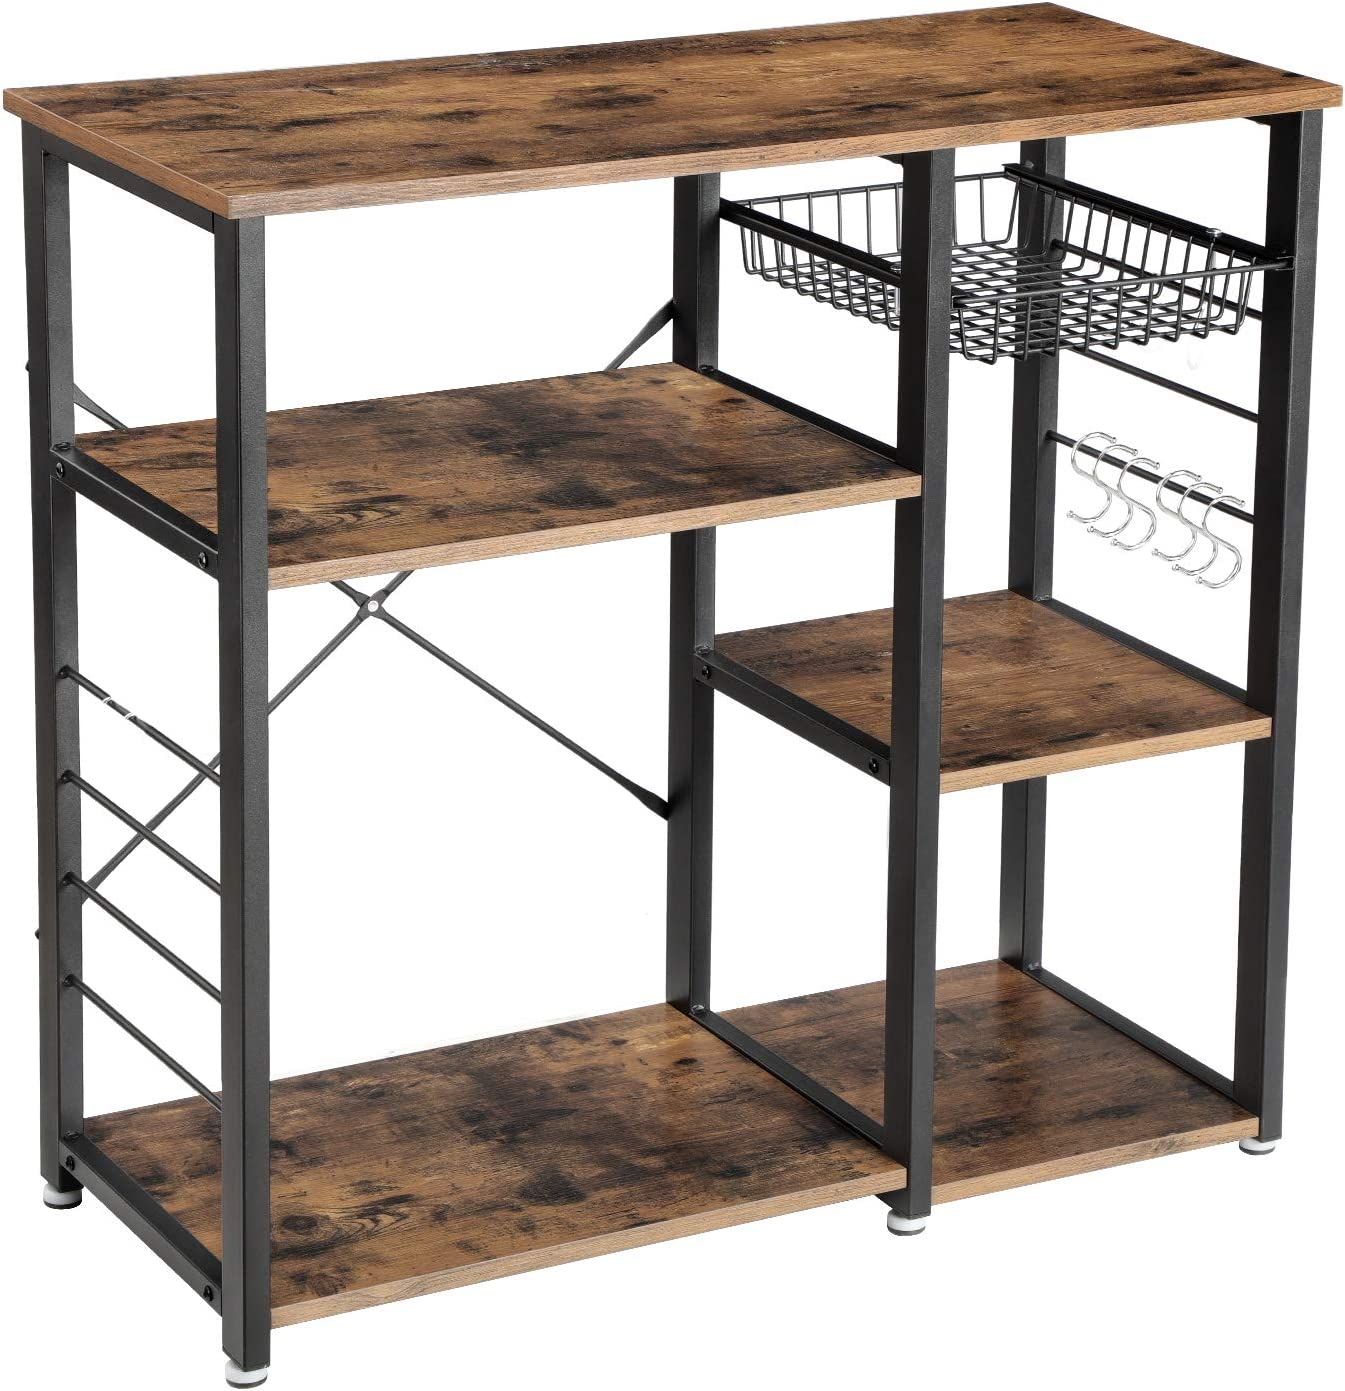 VASAGLE Industrial Kitchen Baker's Rack, Coffee Bar, Microwave Oven Stand Metal Frame, Wire Basket 6 Hooks Mini Oven, Spices Utensils, Simple Assembly Wood Look - Standing Baker's Racks